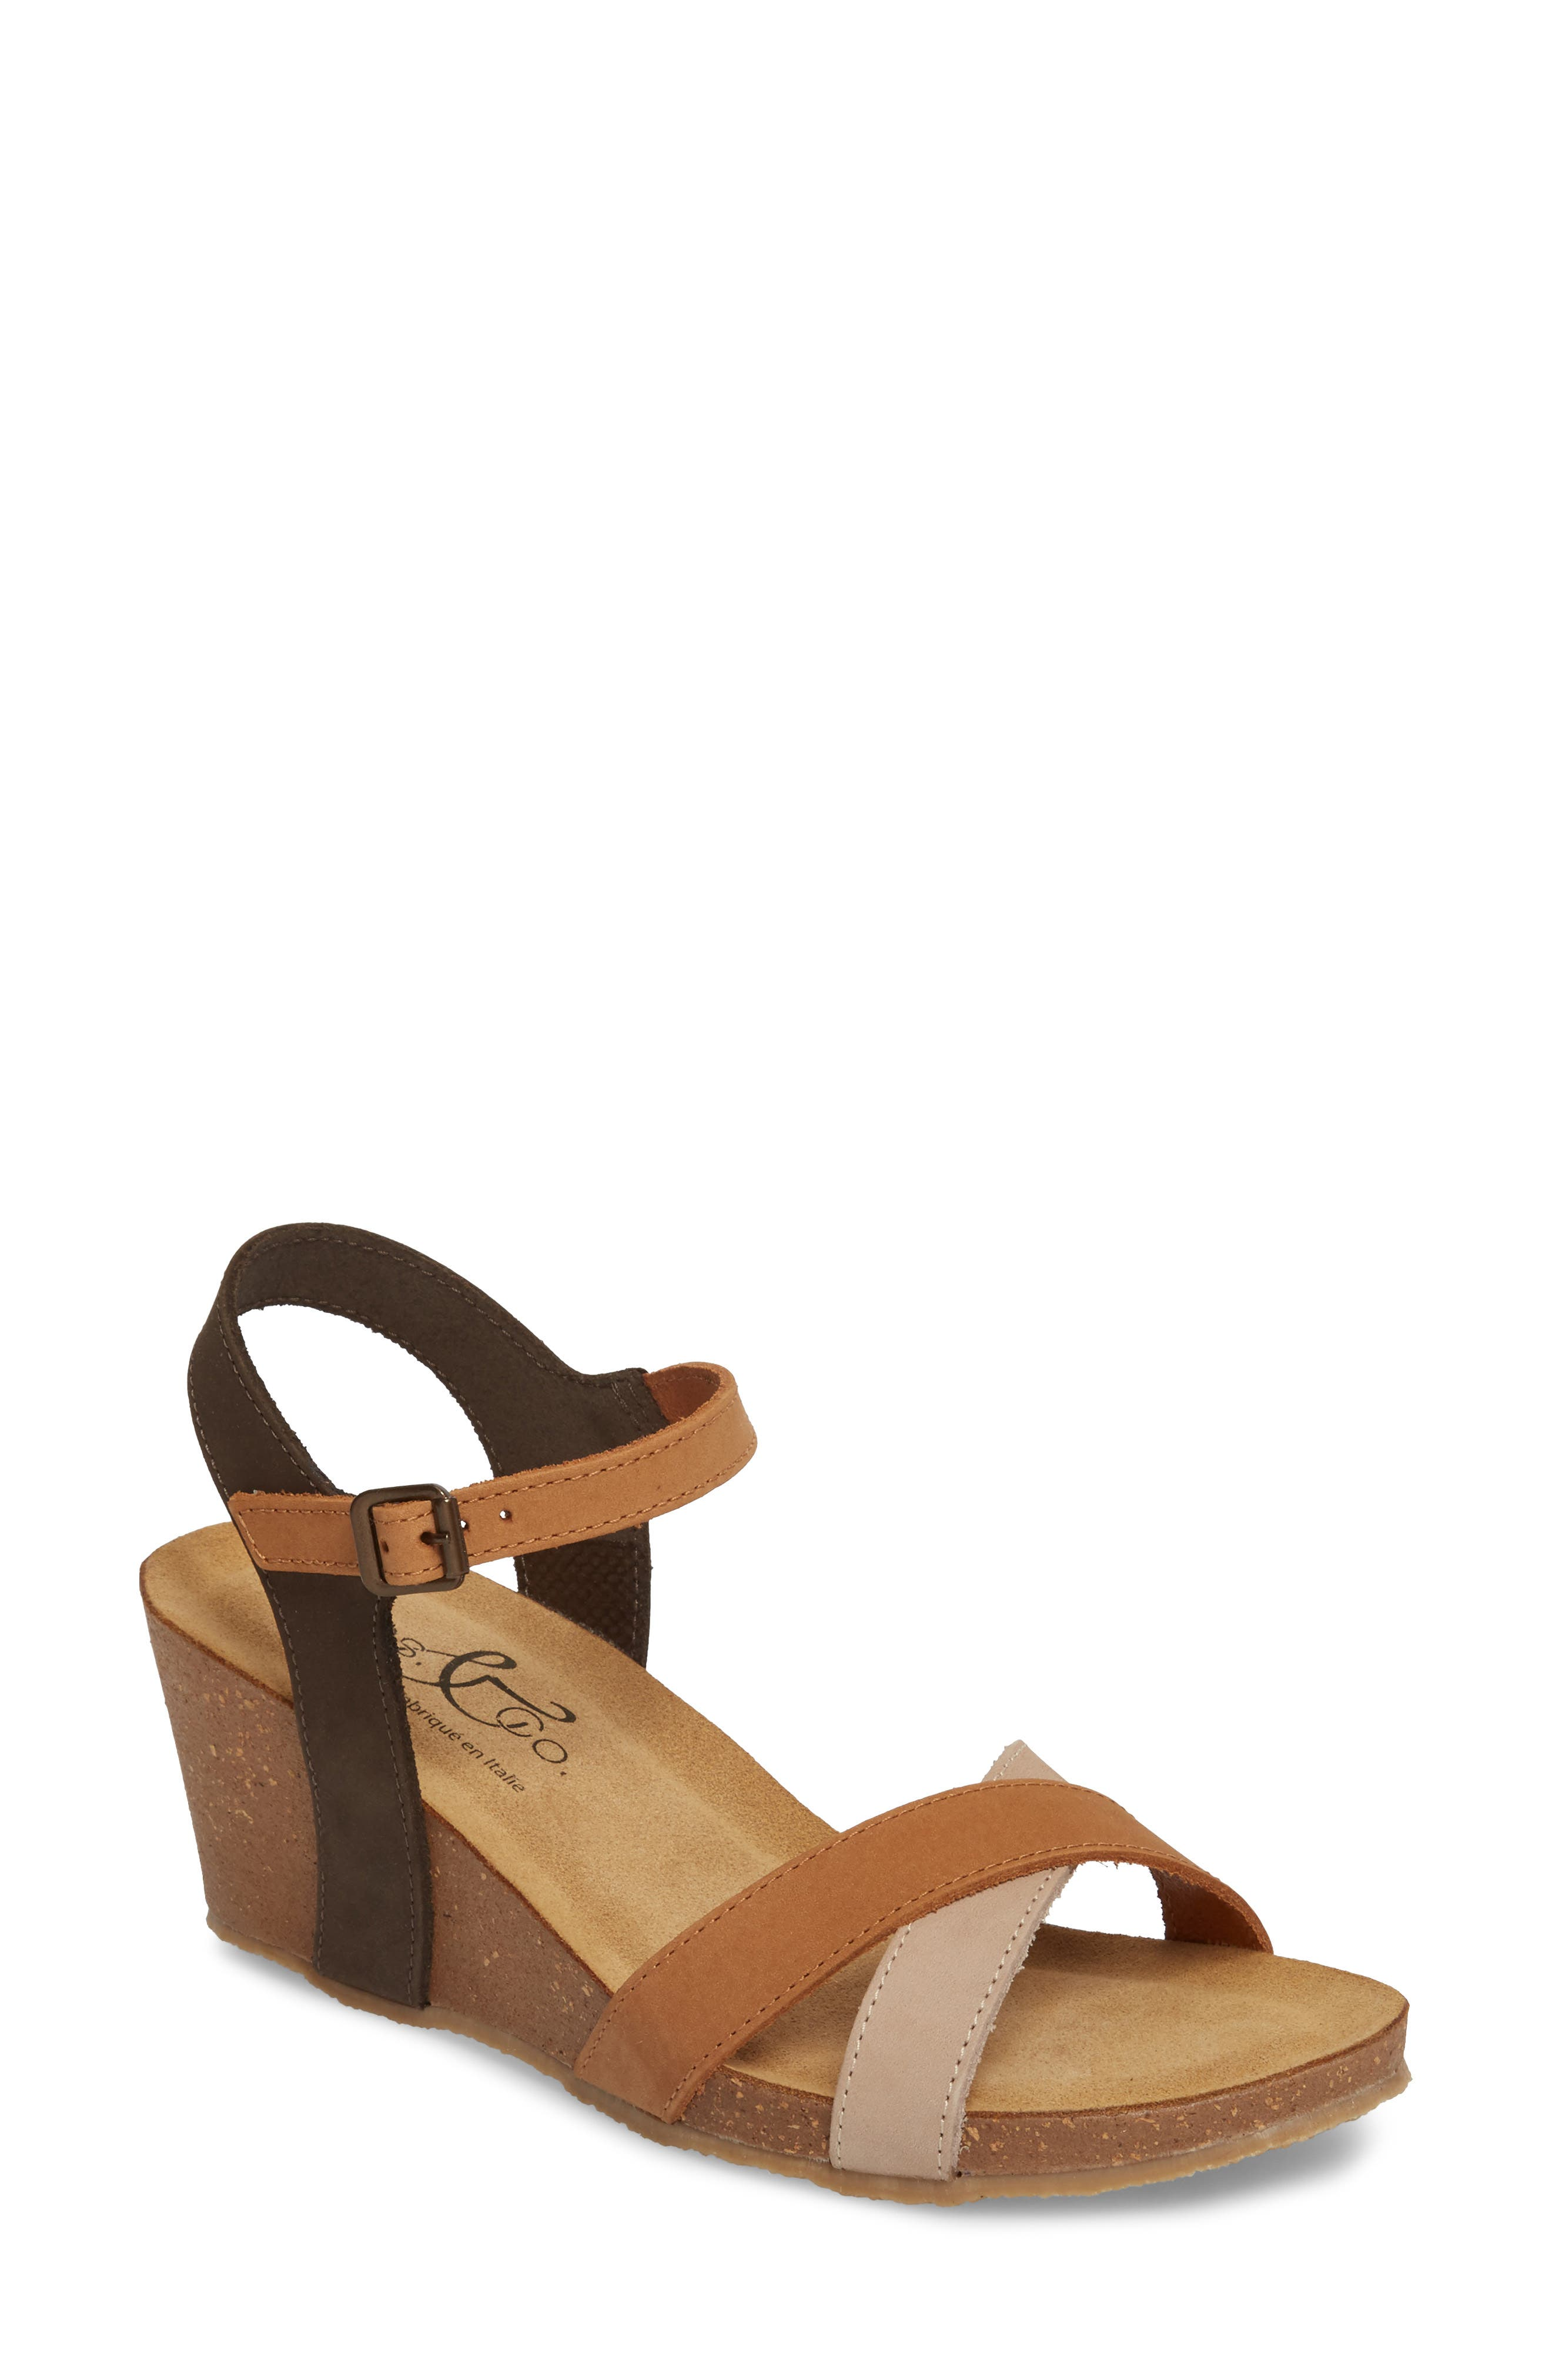 Lucca Wedge Sandal,                             Main thumbnail 1, color,                             Multi Cognac Nubuck Leather